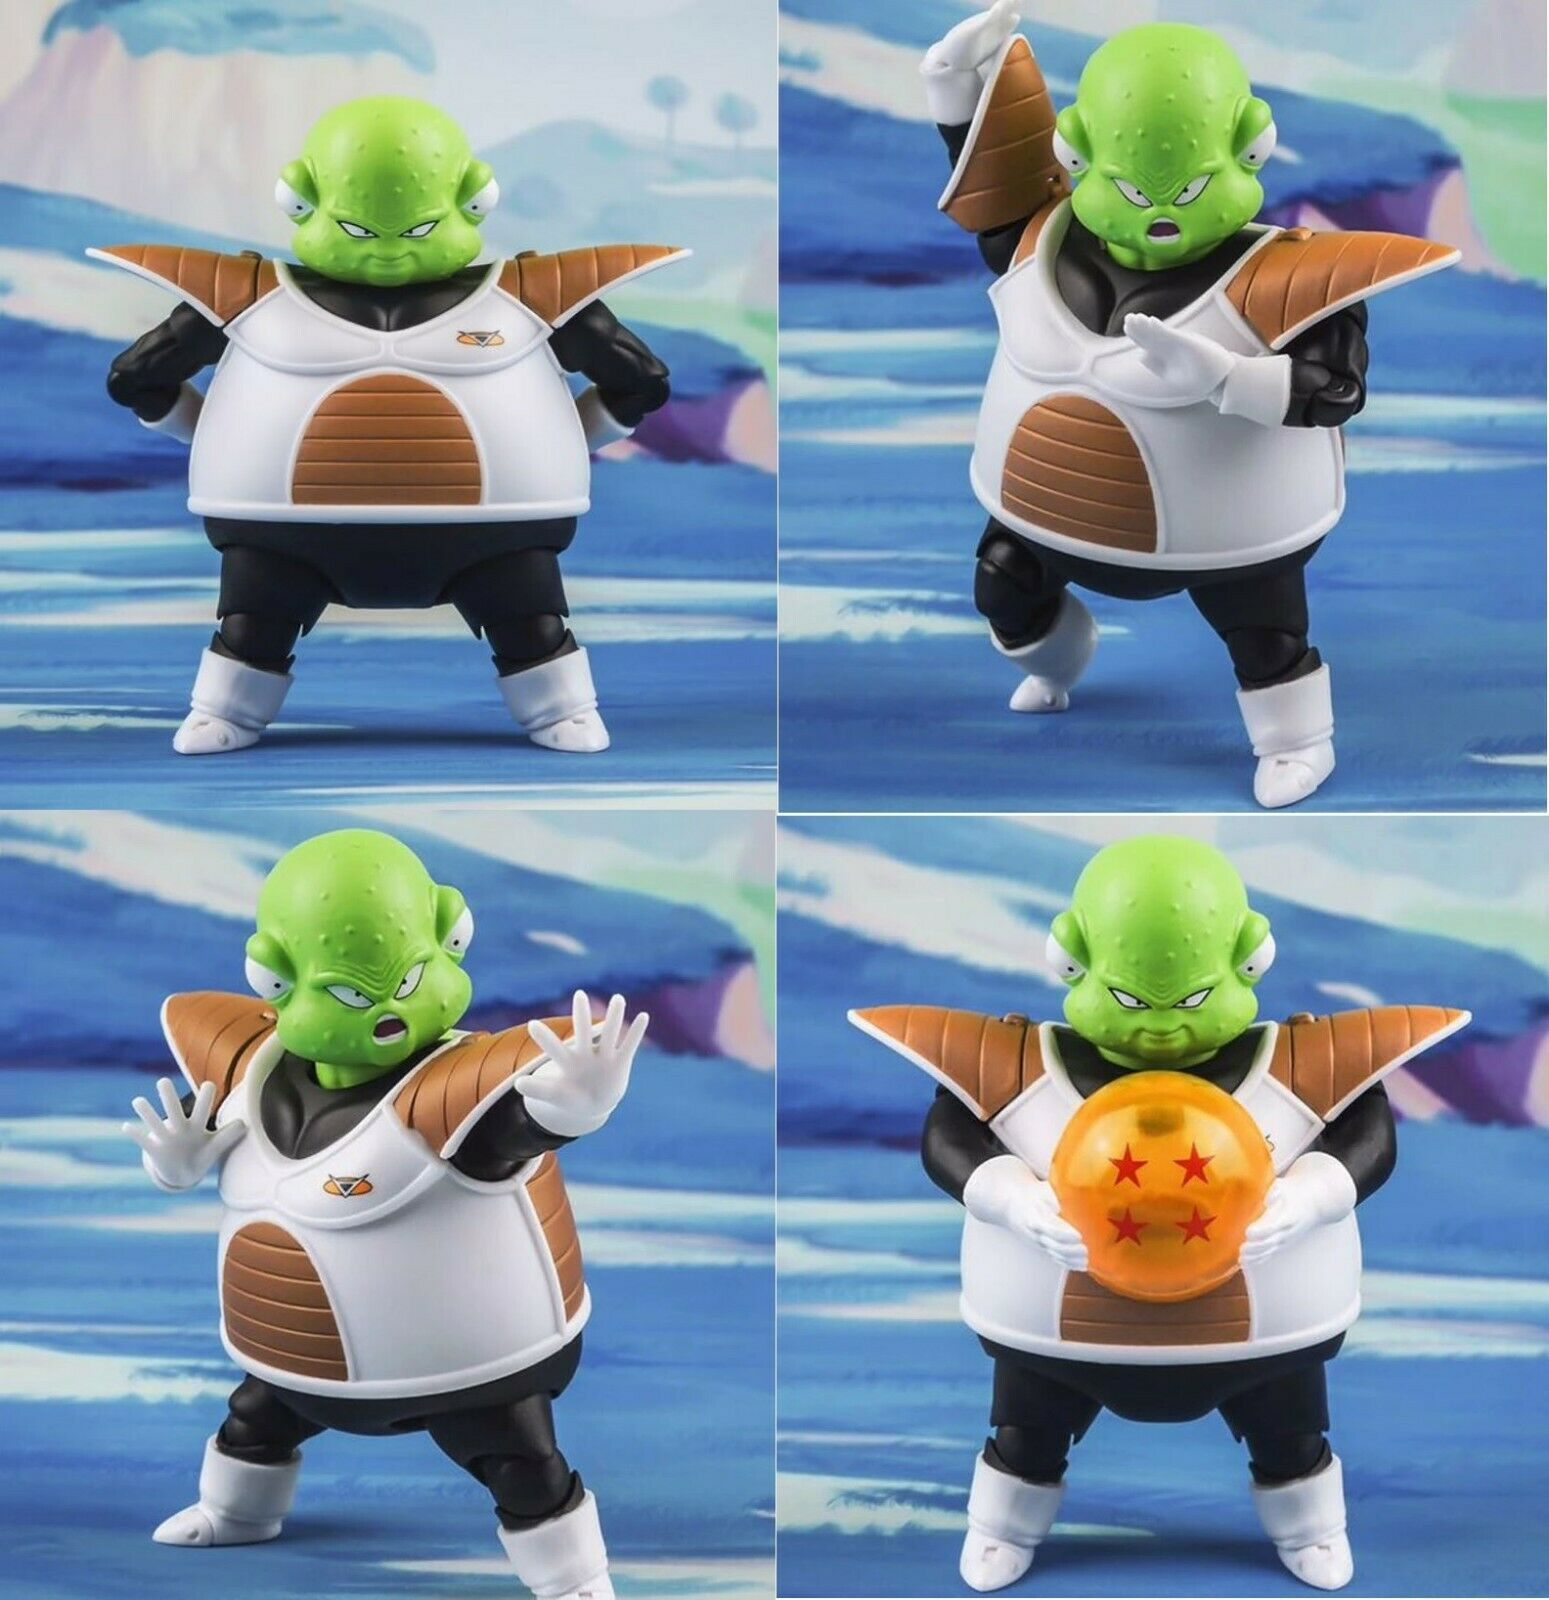 DRAGON BALL- Guldo Ginyu Force SHF Figuarts Freezer Special Forces action figure